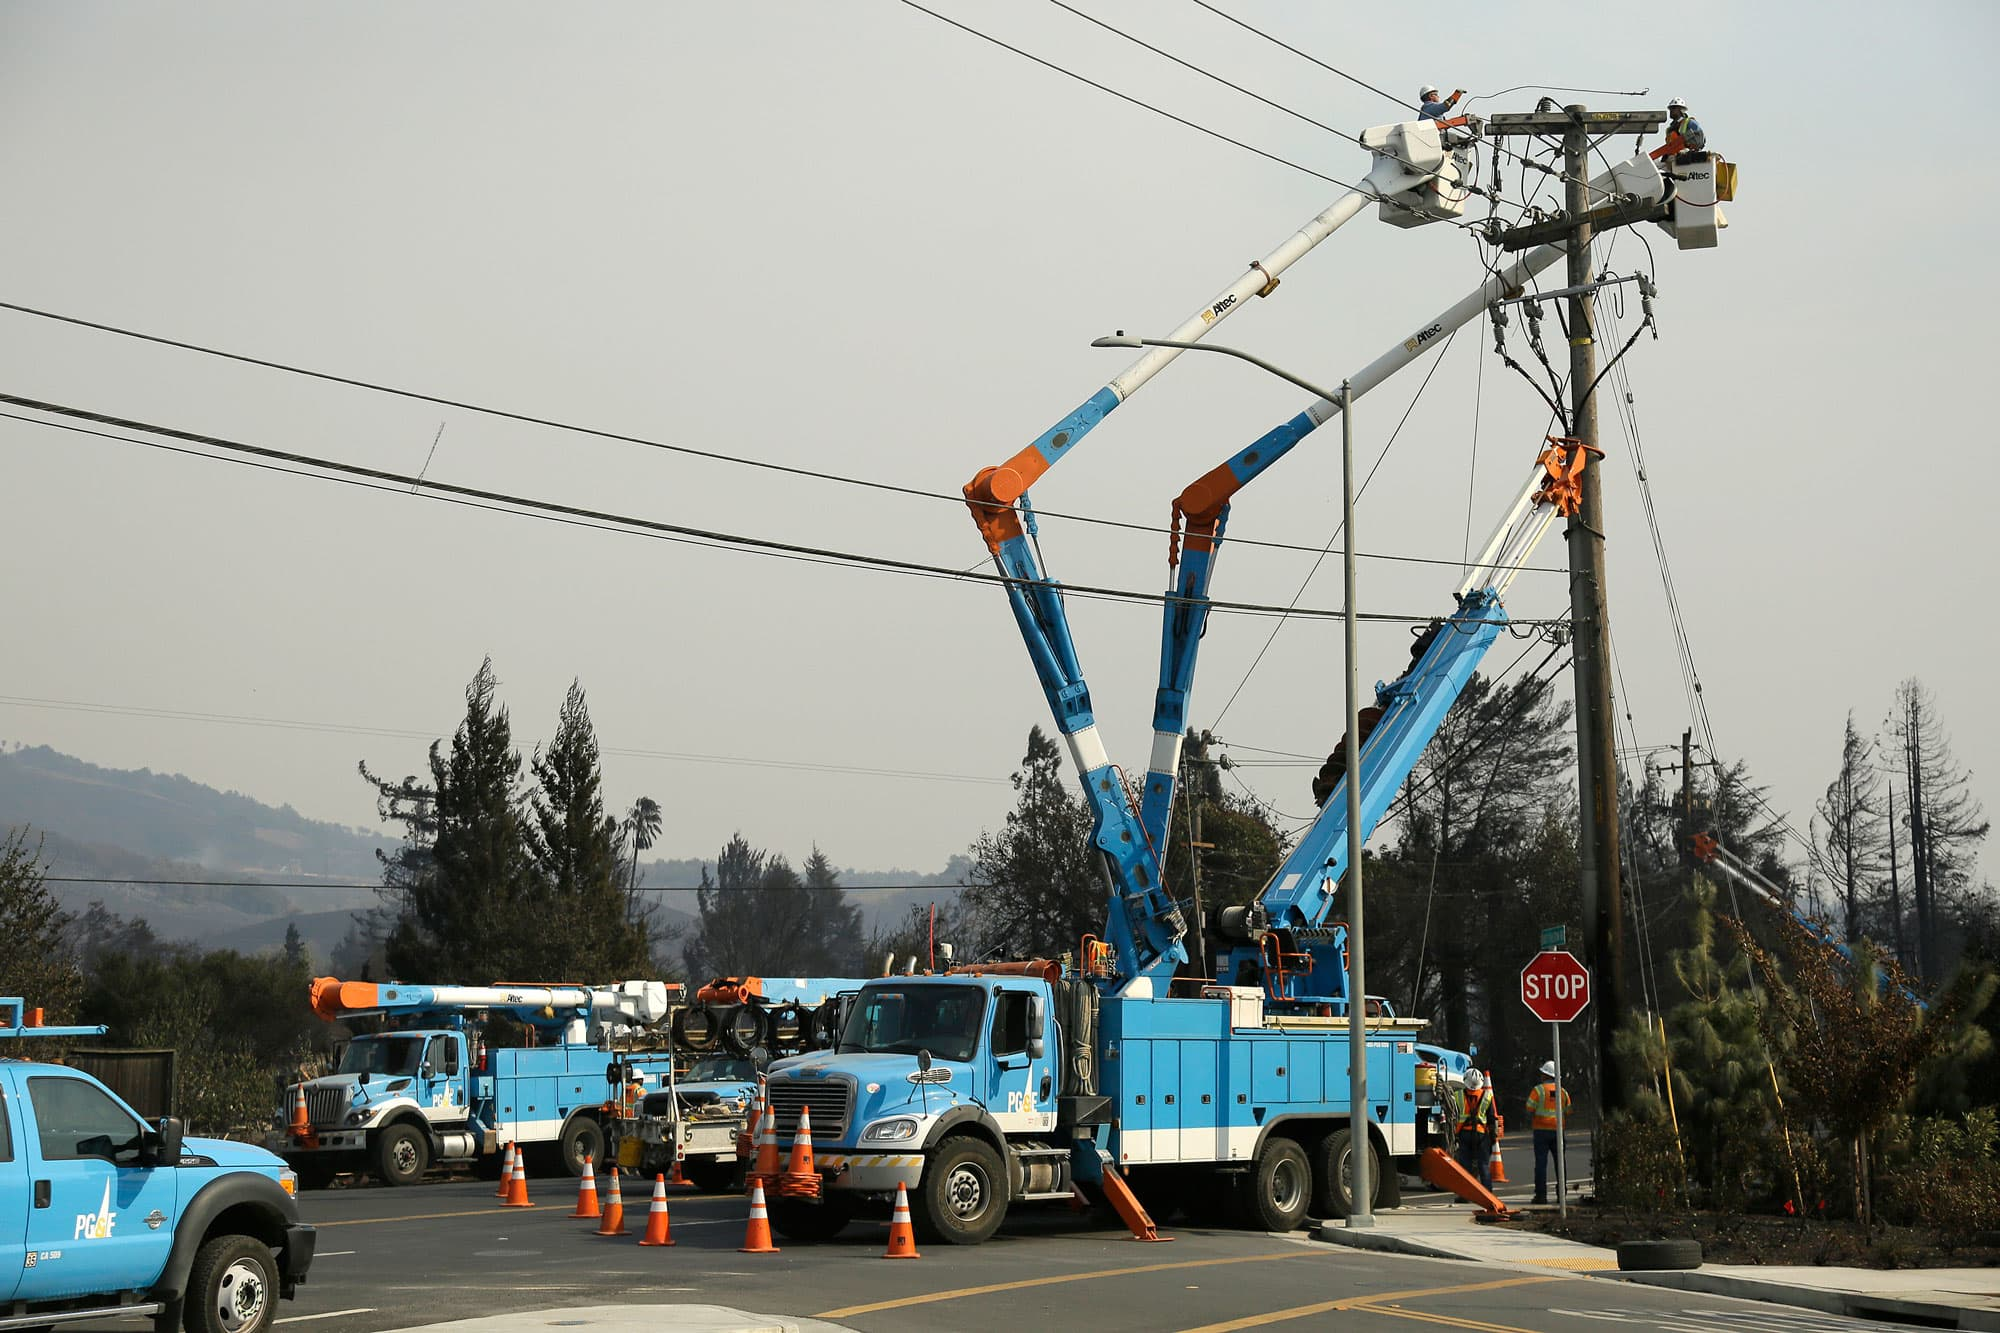 PG&E plunges on concern its power lines may have started ...